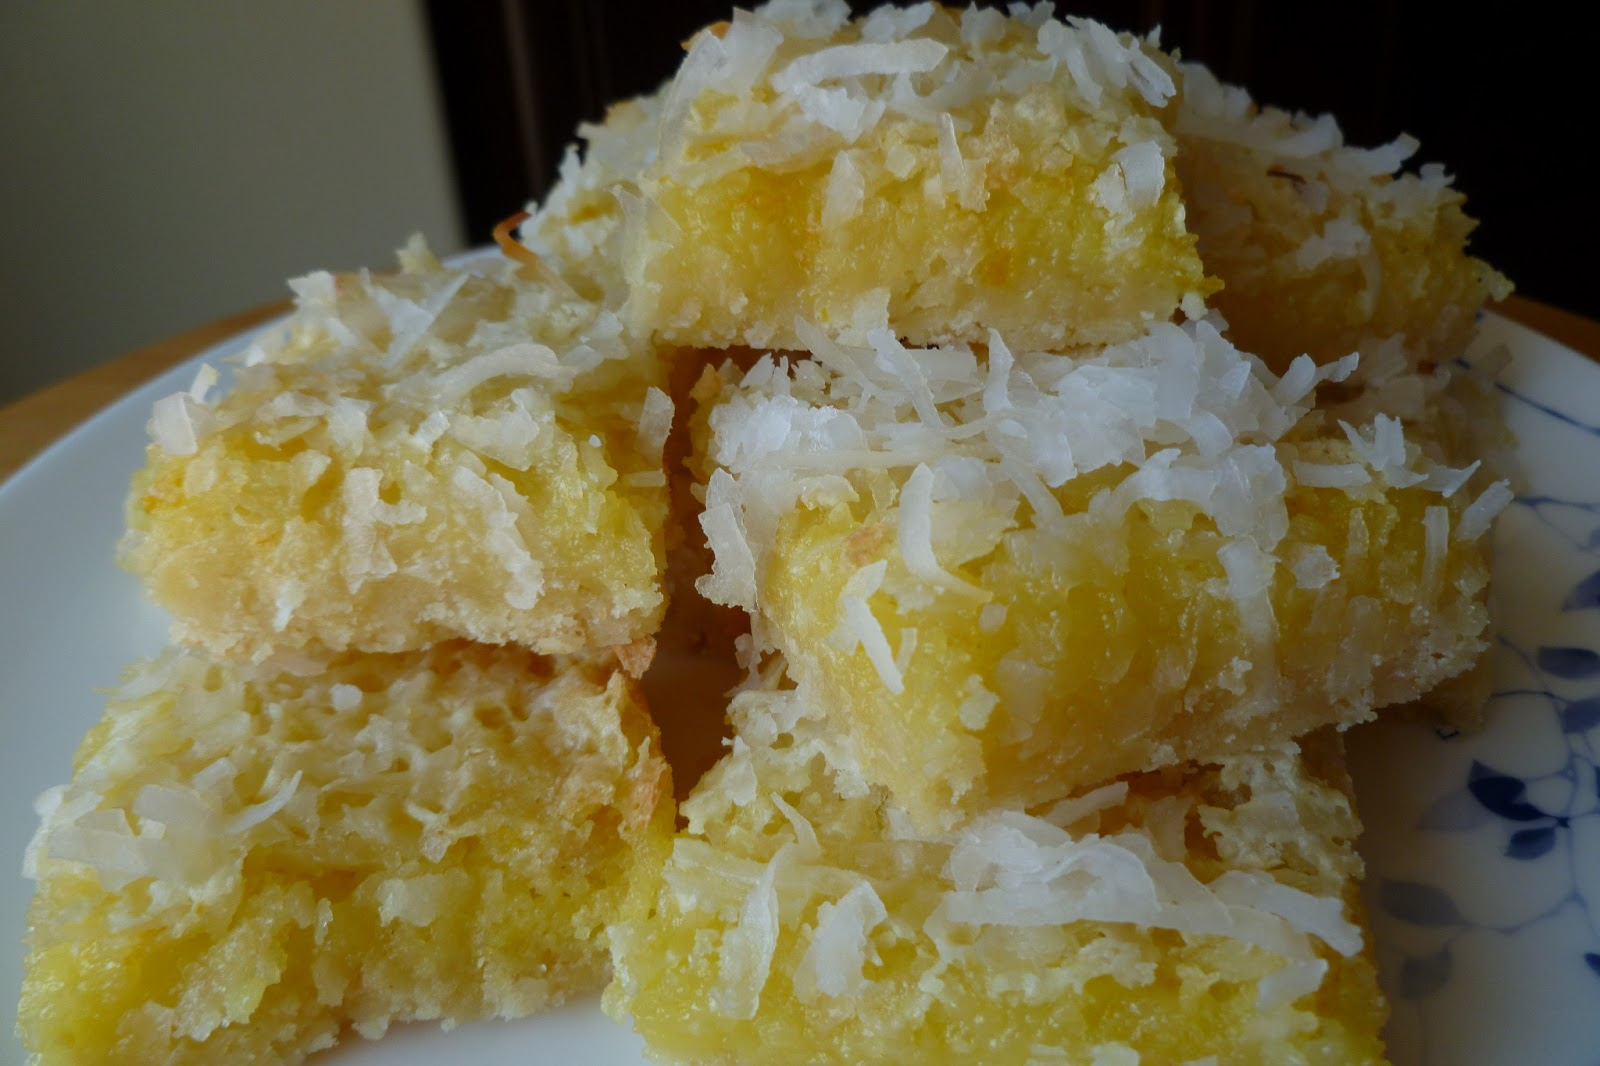 Lemon Coconut Bars - made April 20,2013 from My Baking Addiction